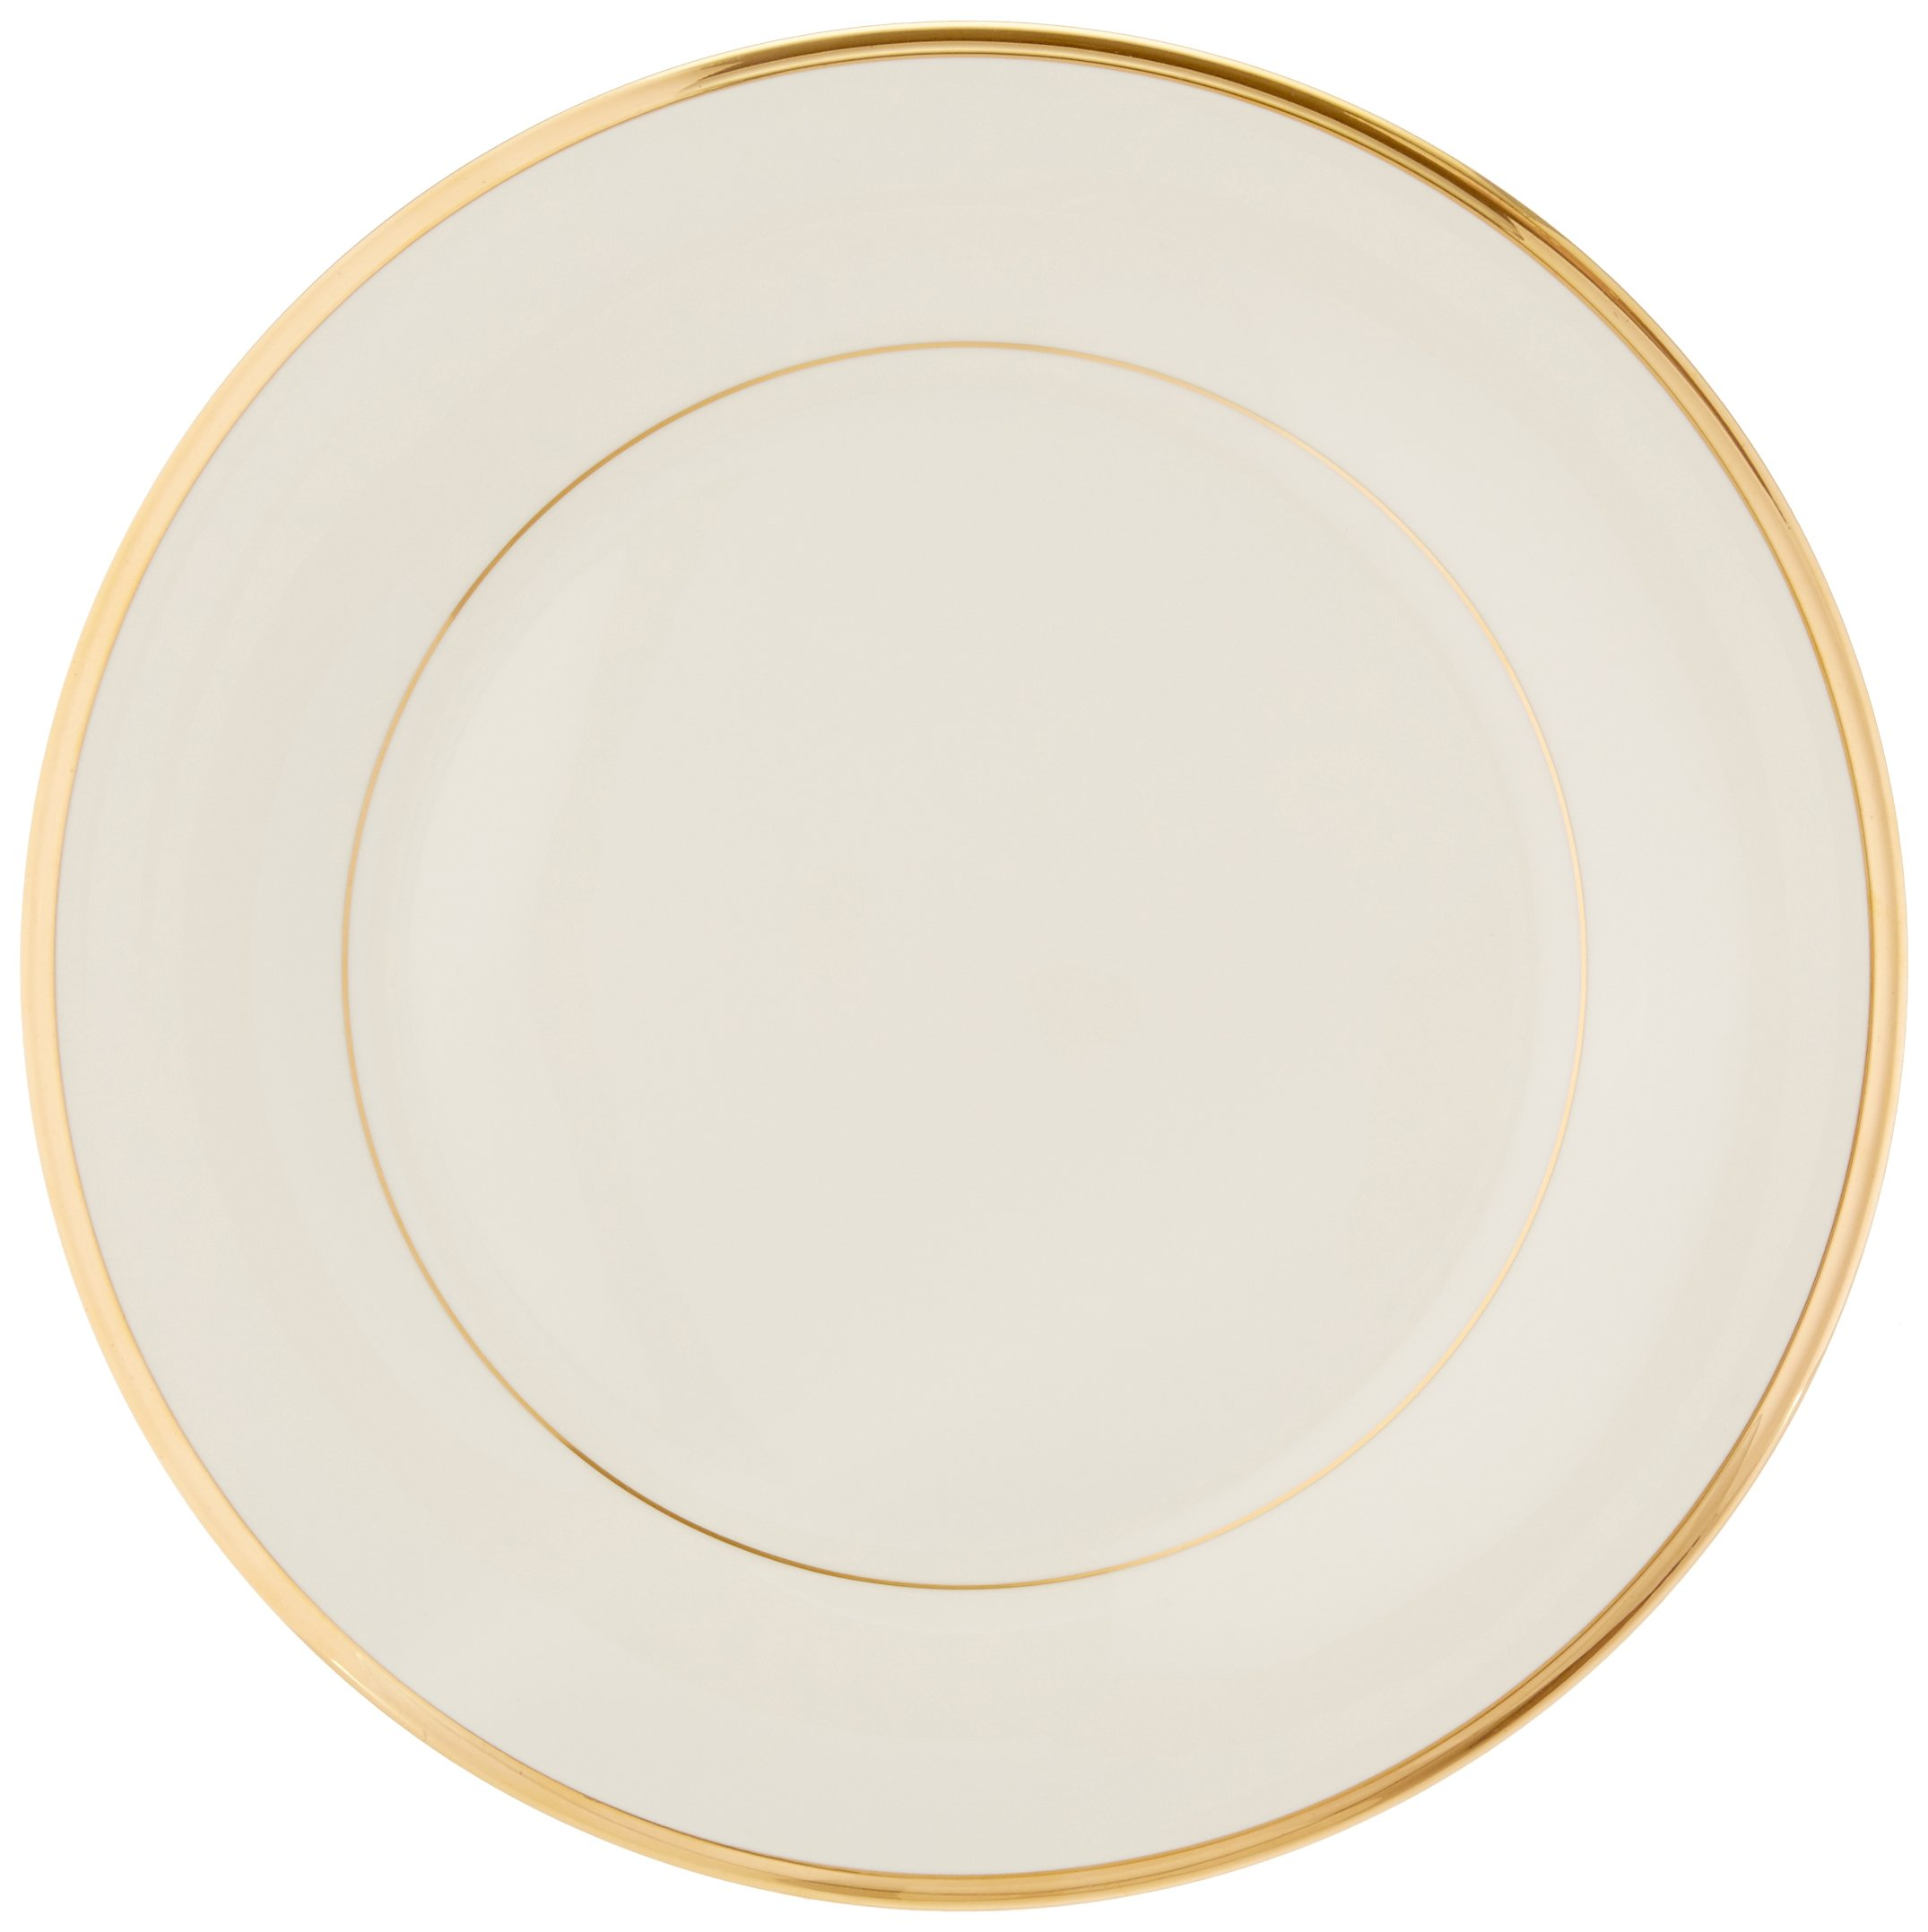 Lenox Eternal Gold-Banded Fine China 5-Piece Place Setting, Service for 1 by Lenox (Image #3)